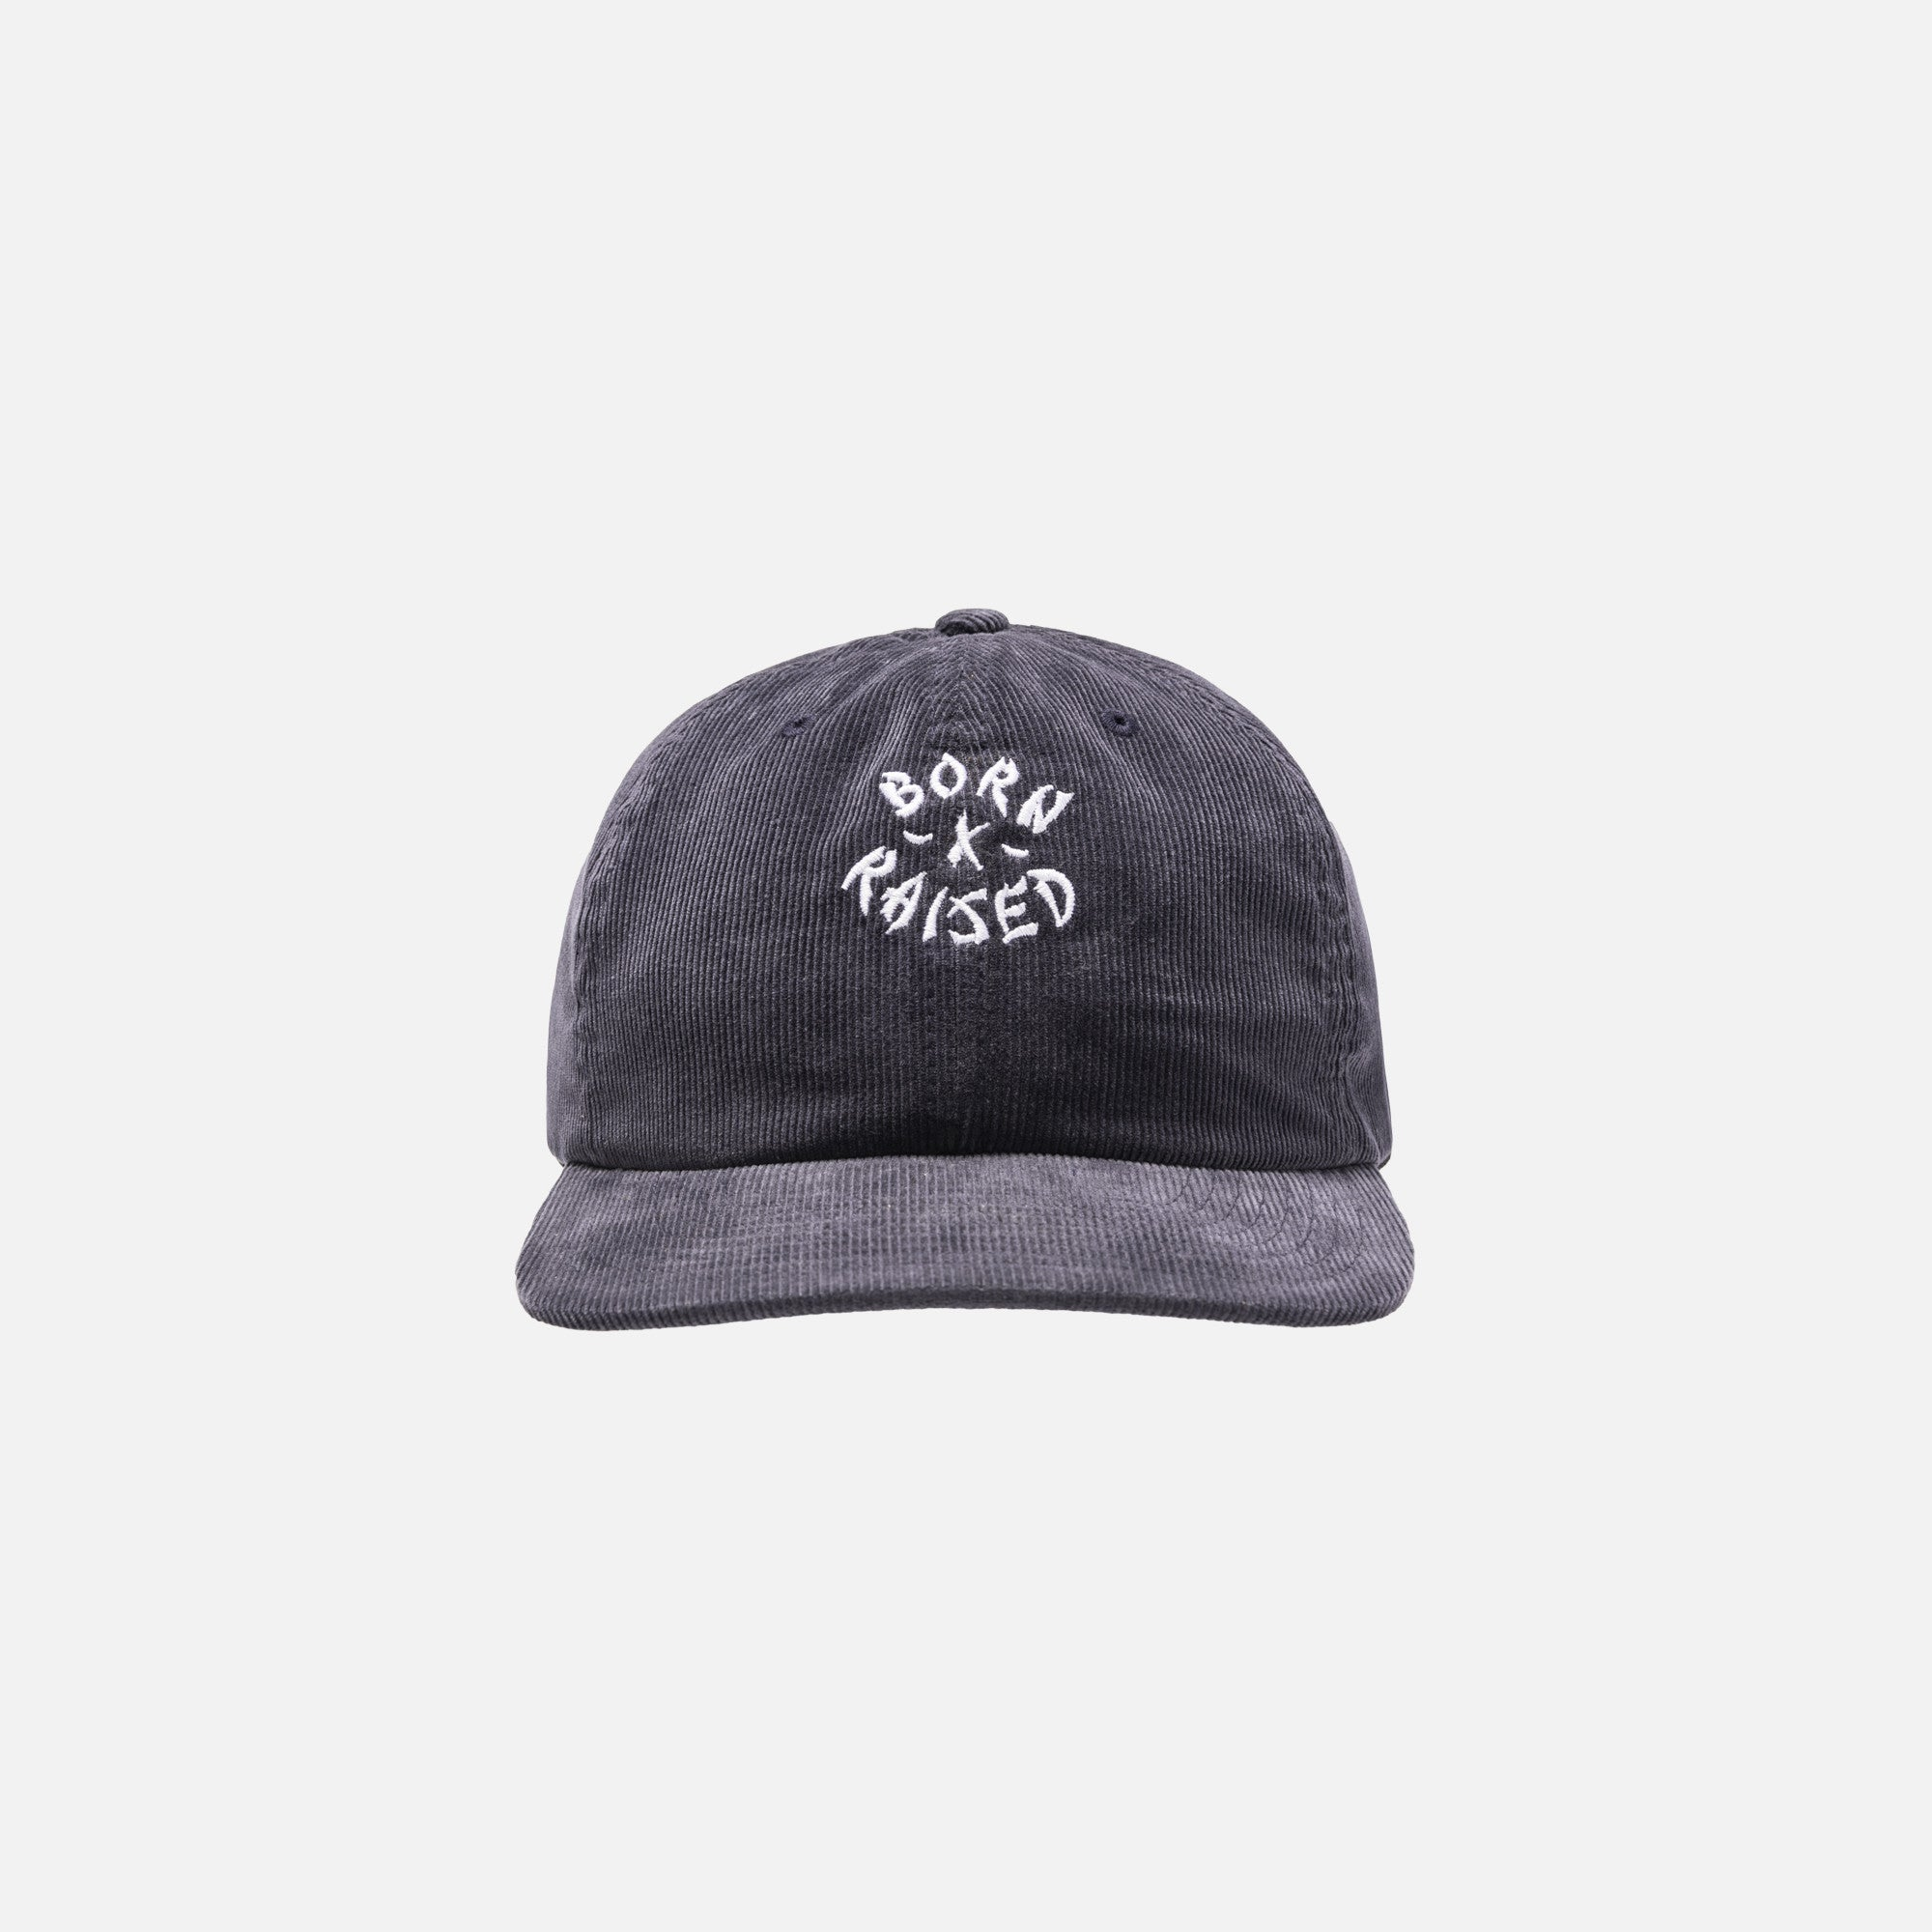 Born X Raised x Mitchell & Ness Westside Rocker Cap - Navy